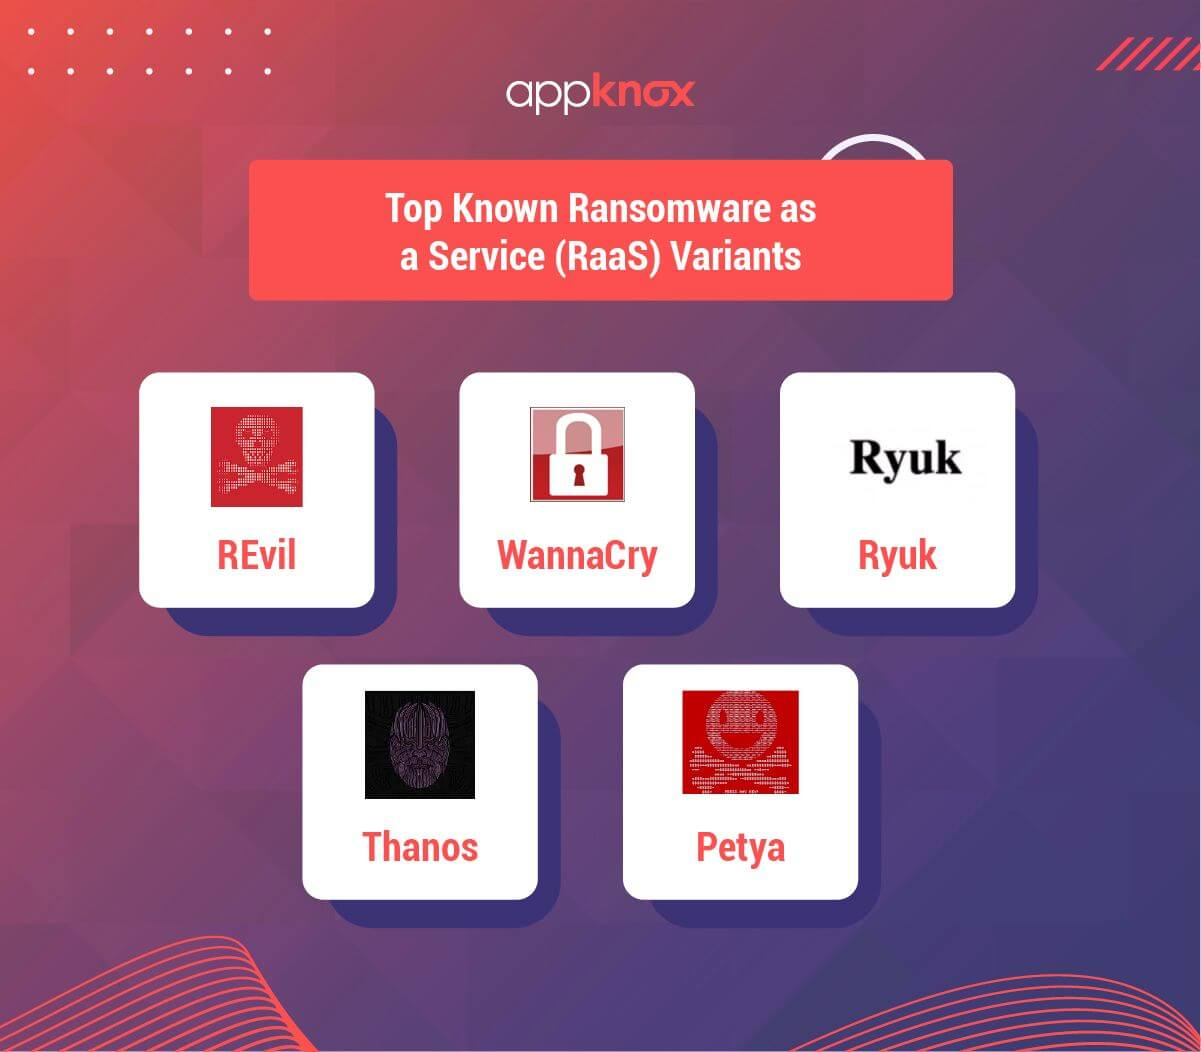 Top 5 Known Ransomware as a Service Variants